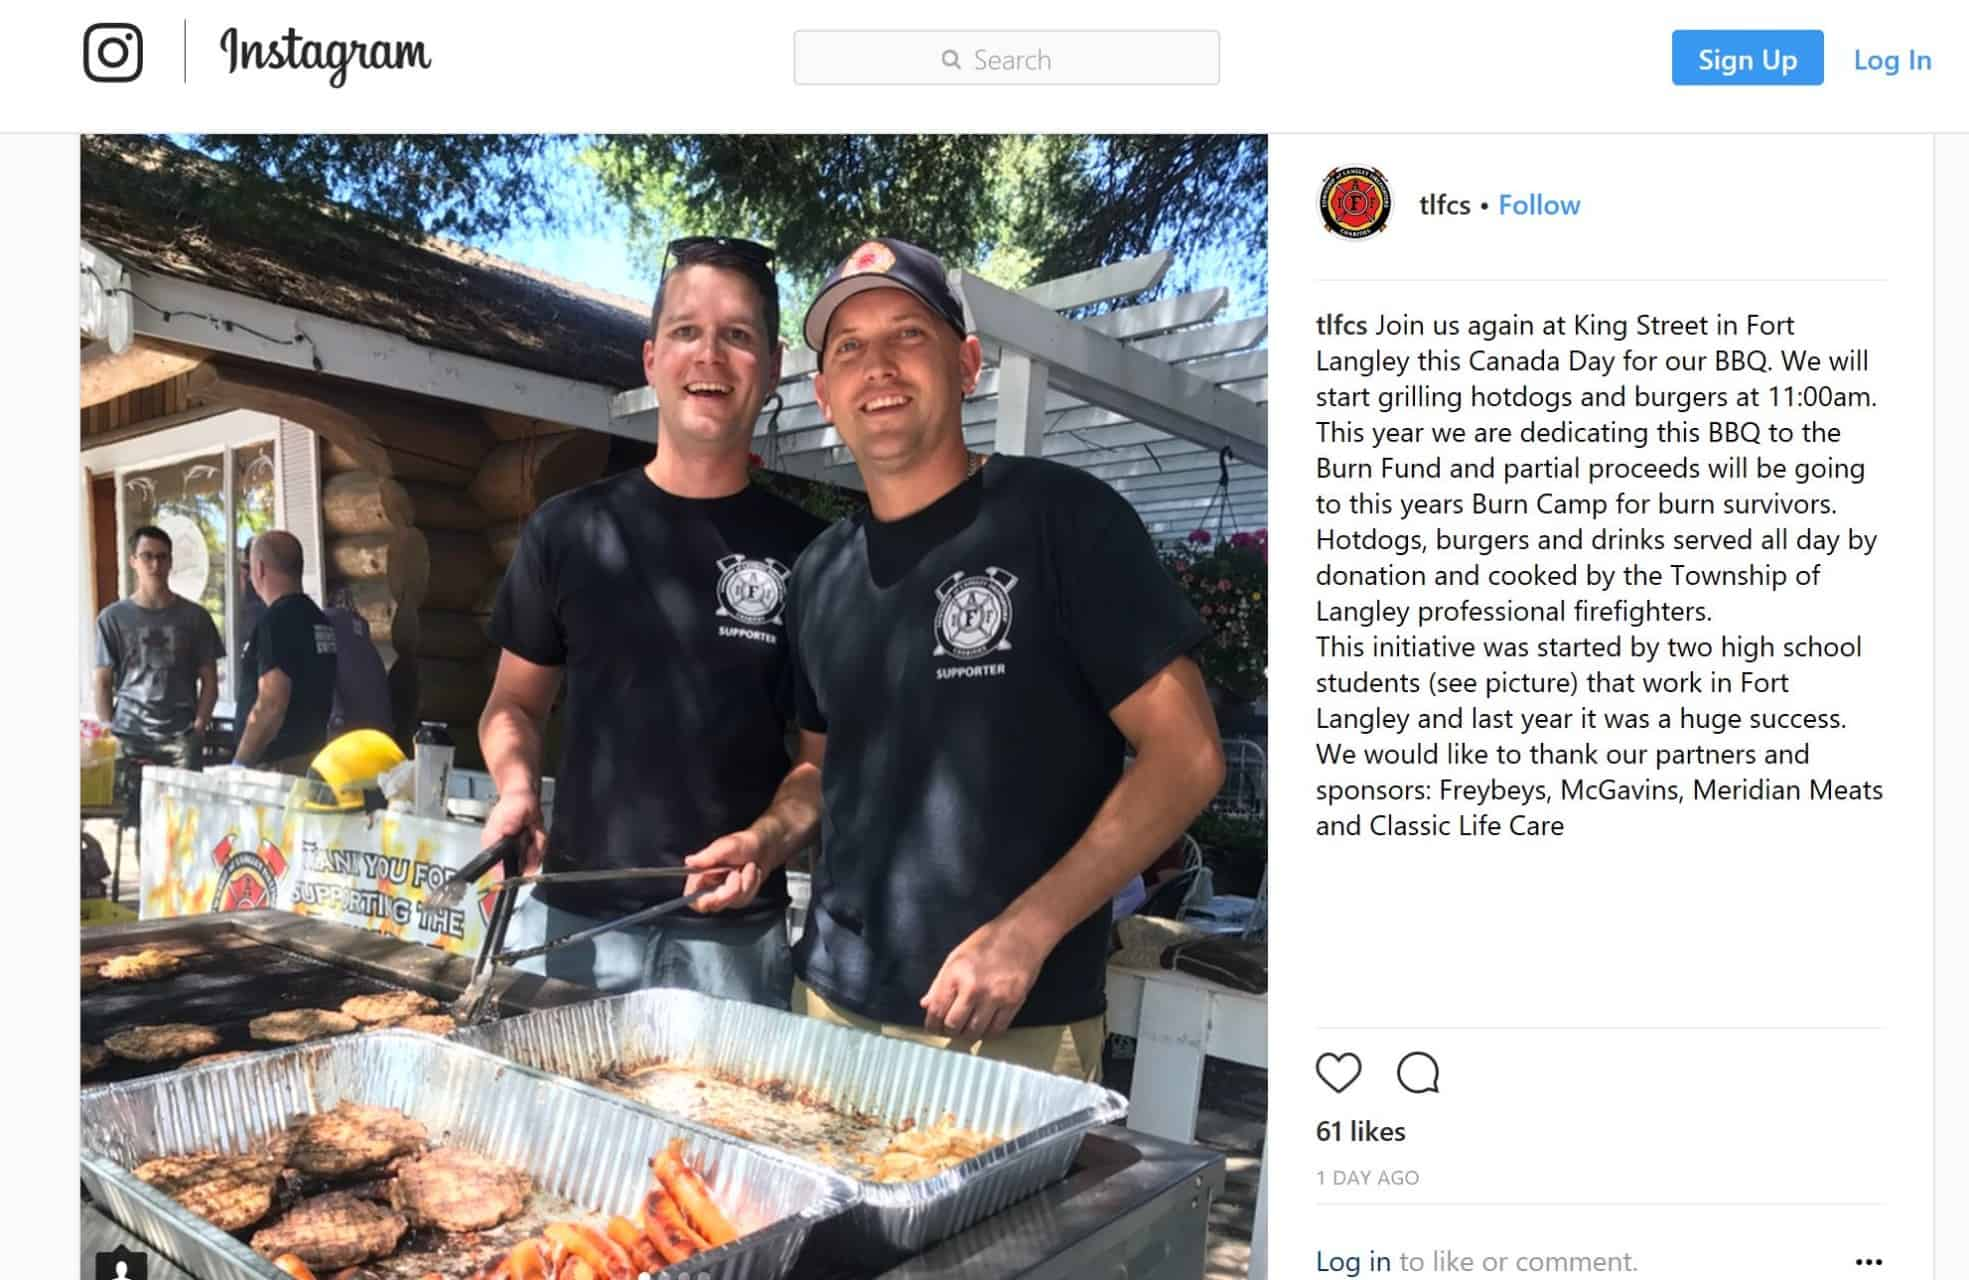 Join a July 1 Langley Barbecue for a Cause